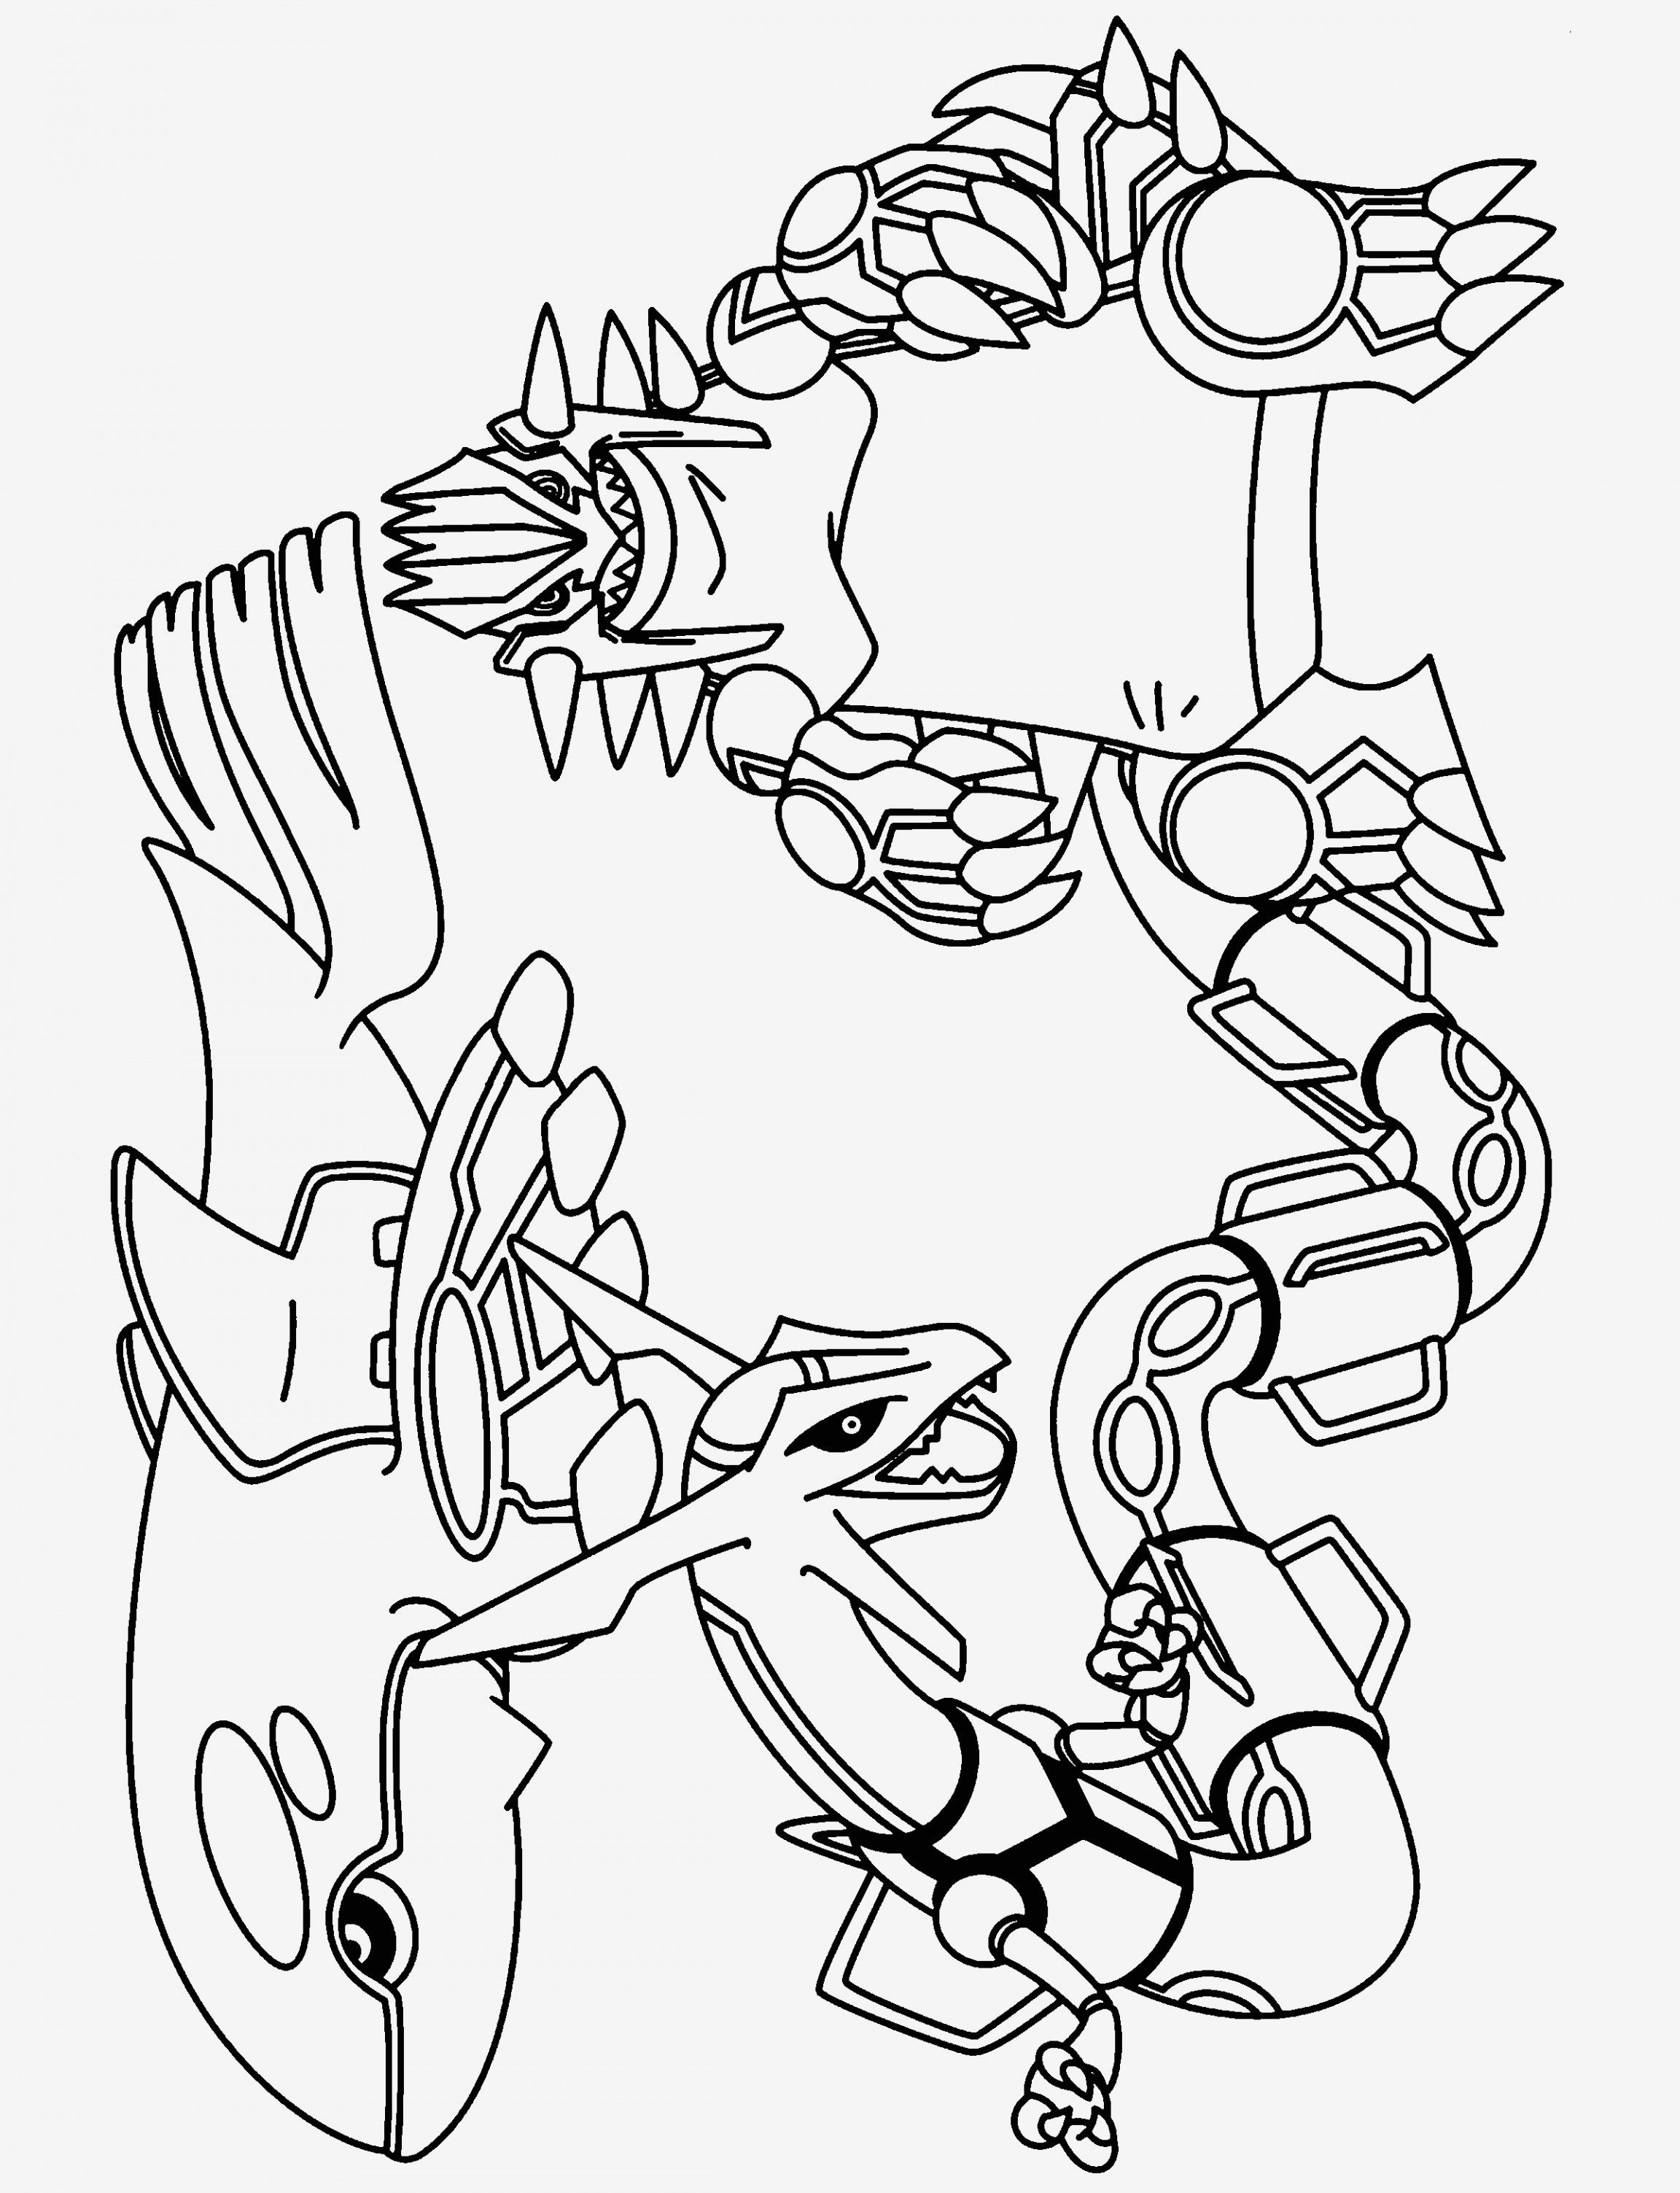 Pokemon Charizard Coloring Pages Learning Coloring Pages